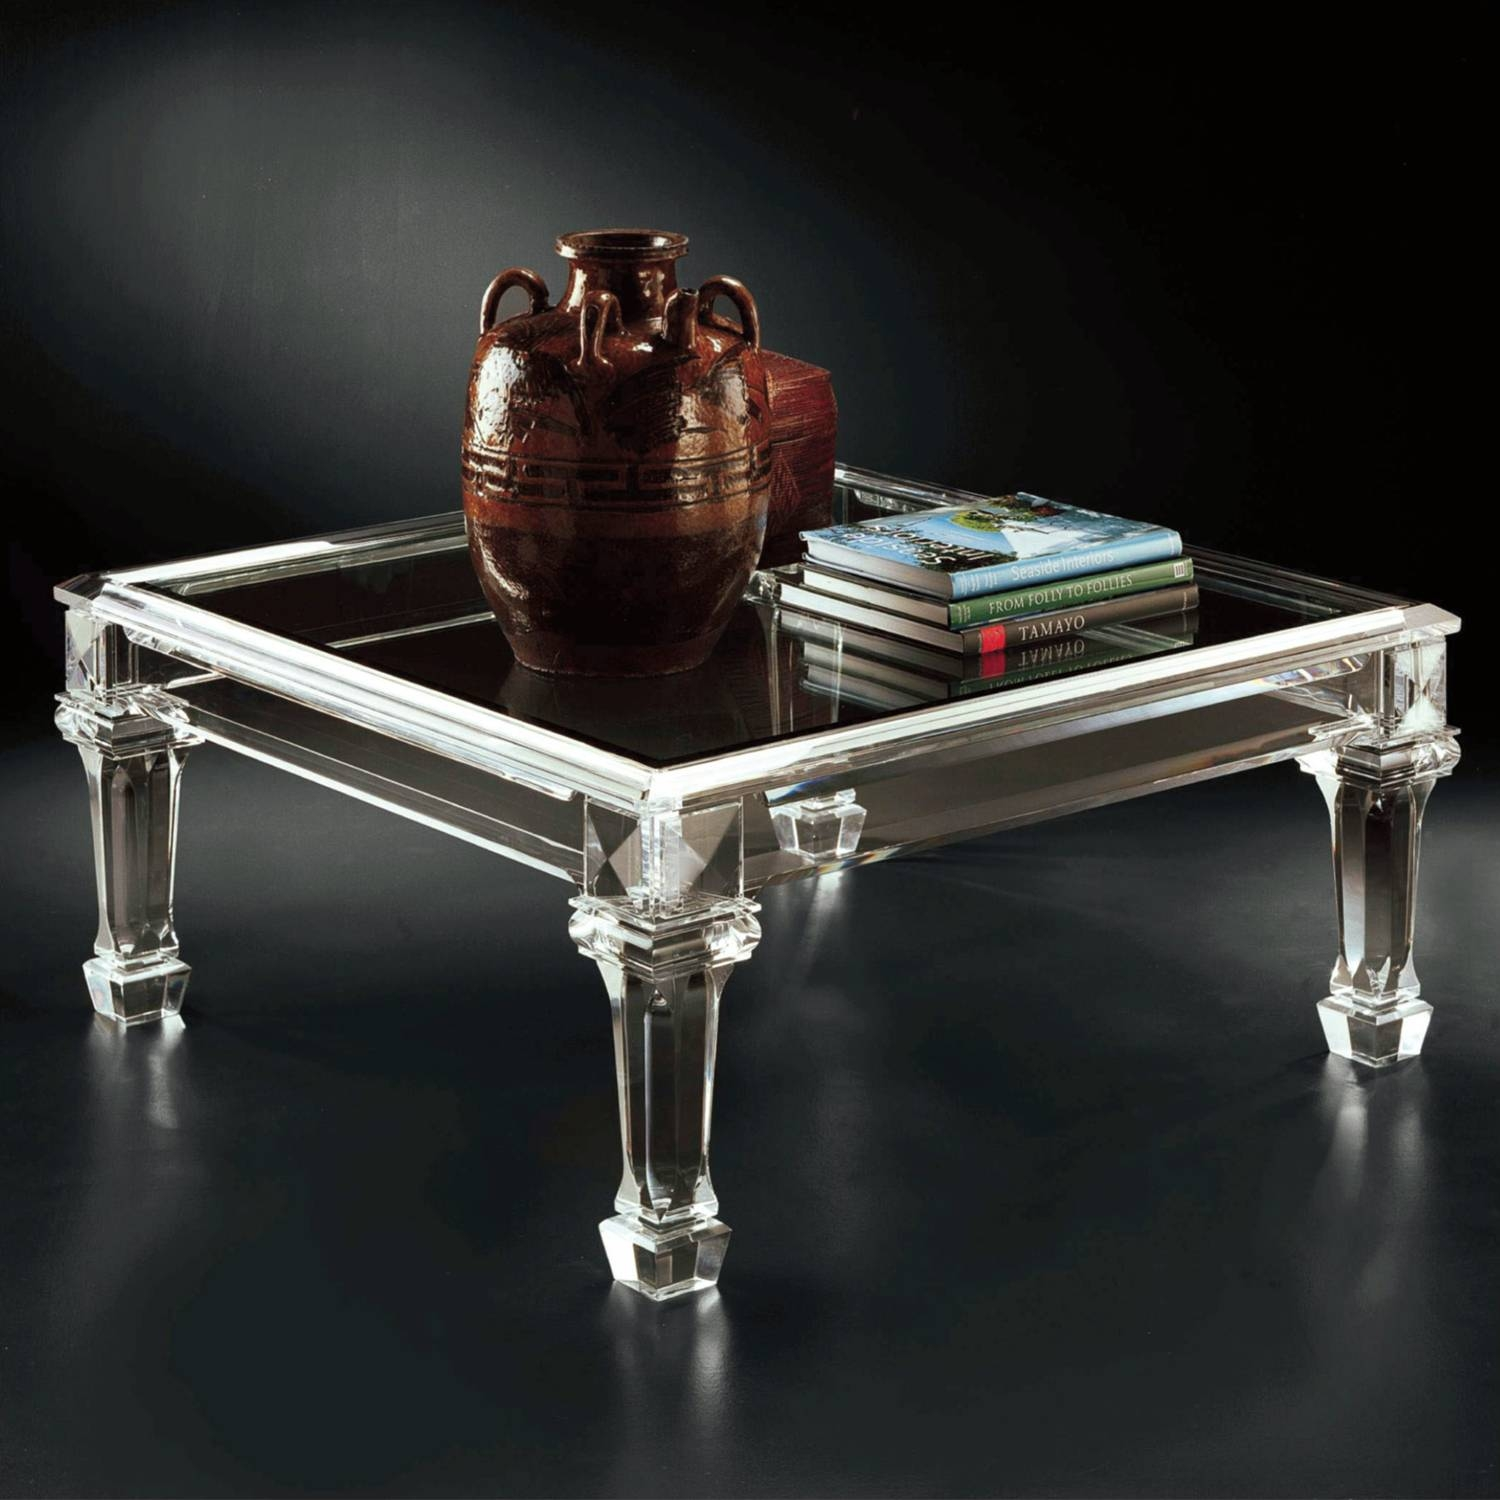 Allan Knightacrylic | Cocktail Tables | Bordeaux Cocktail Table regarding Bordeaux Coffee Tables (Image 2 of 30)